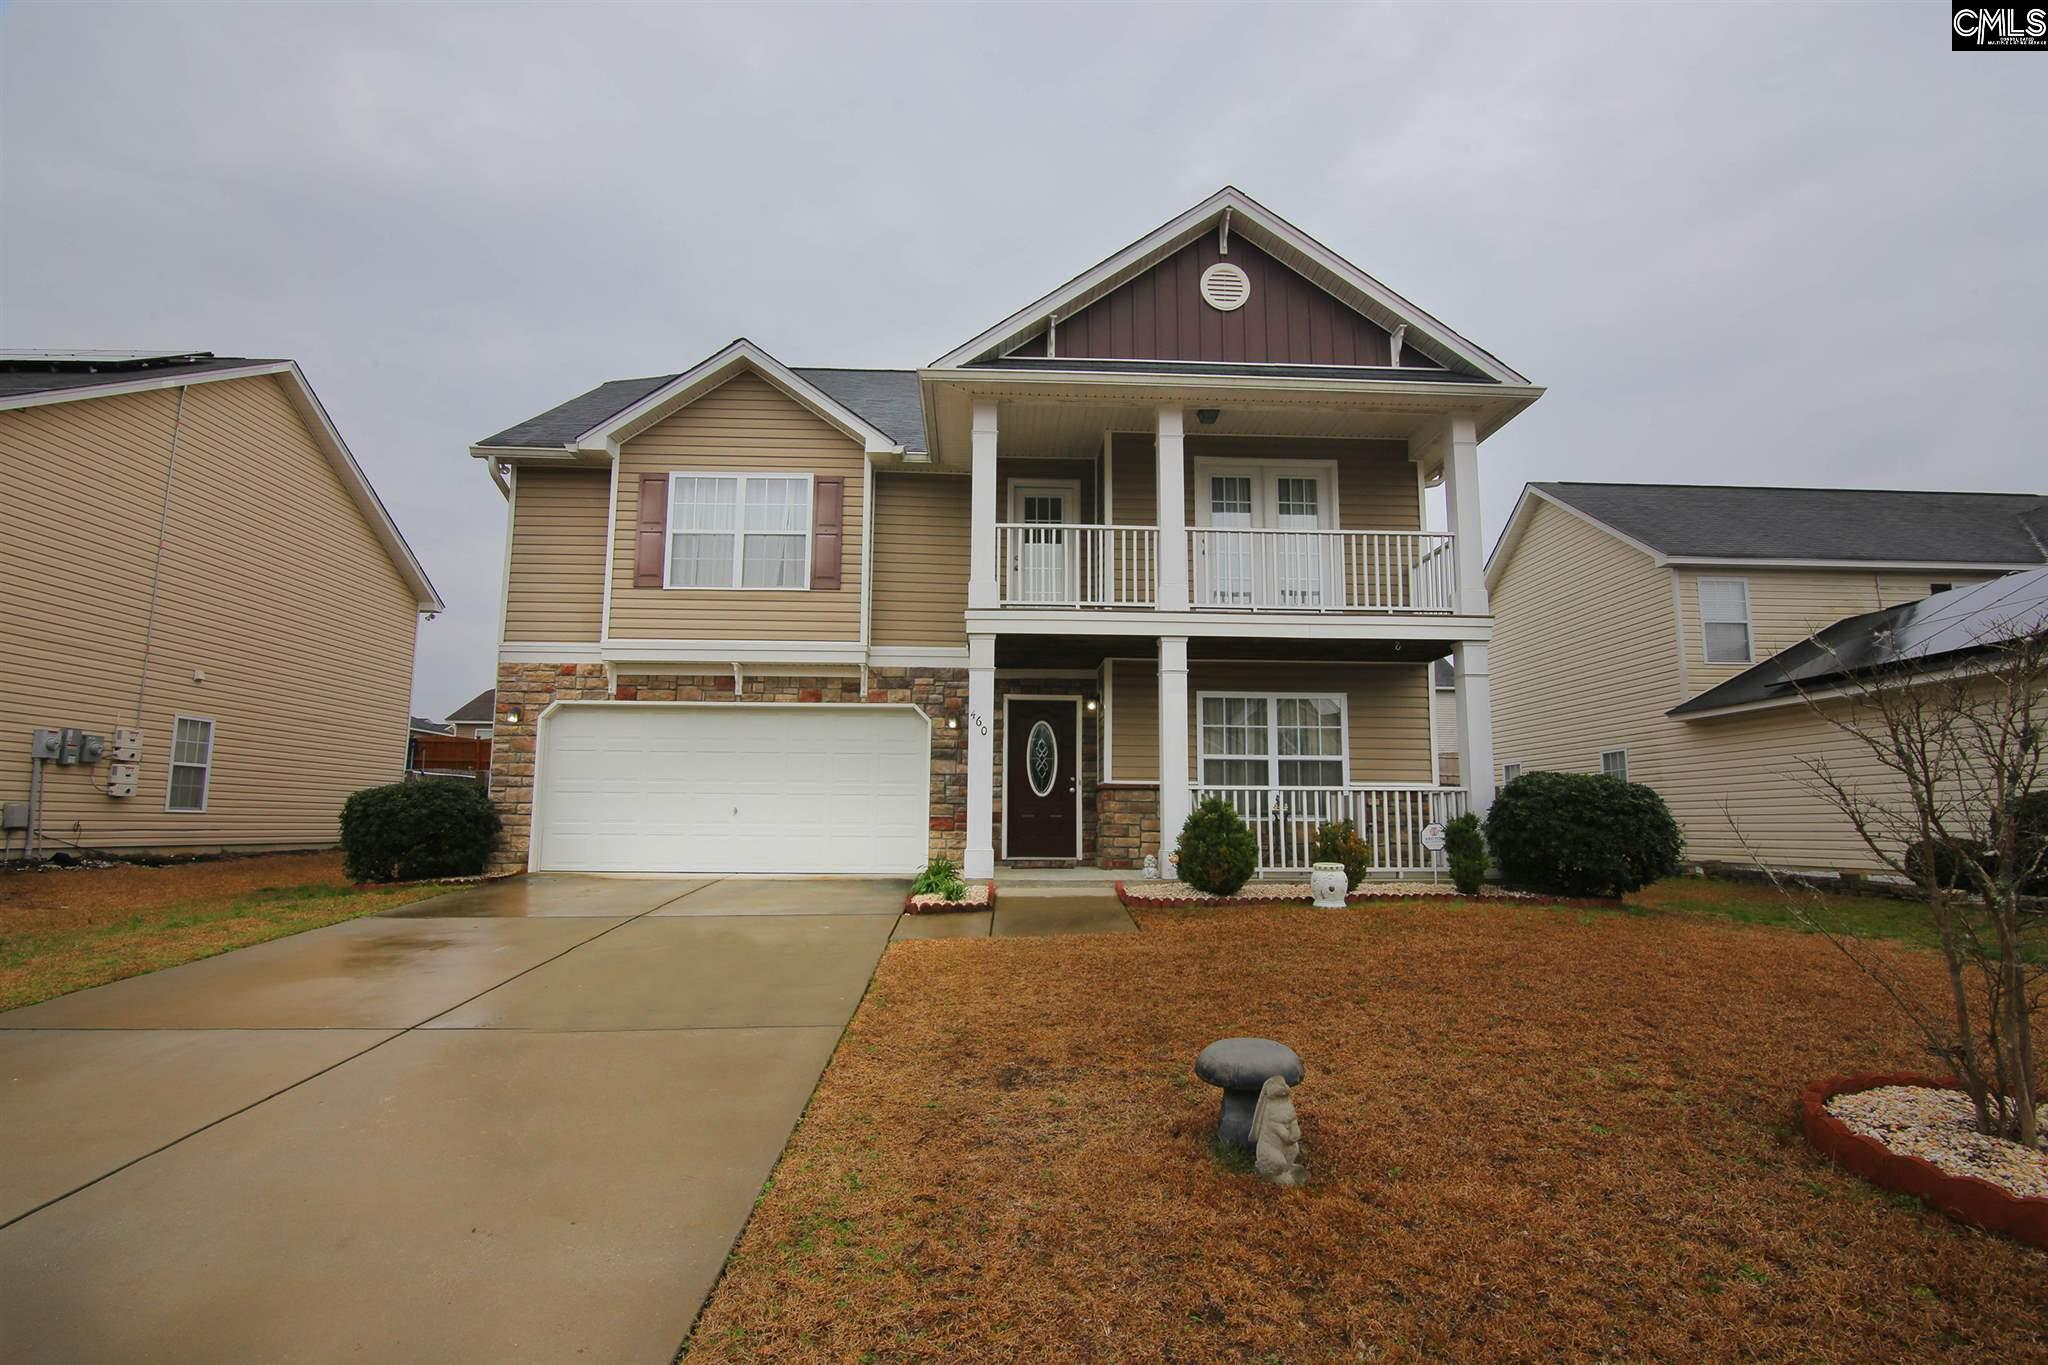 460 Dukes Hill Columbia, SC 29203-9069